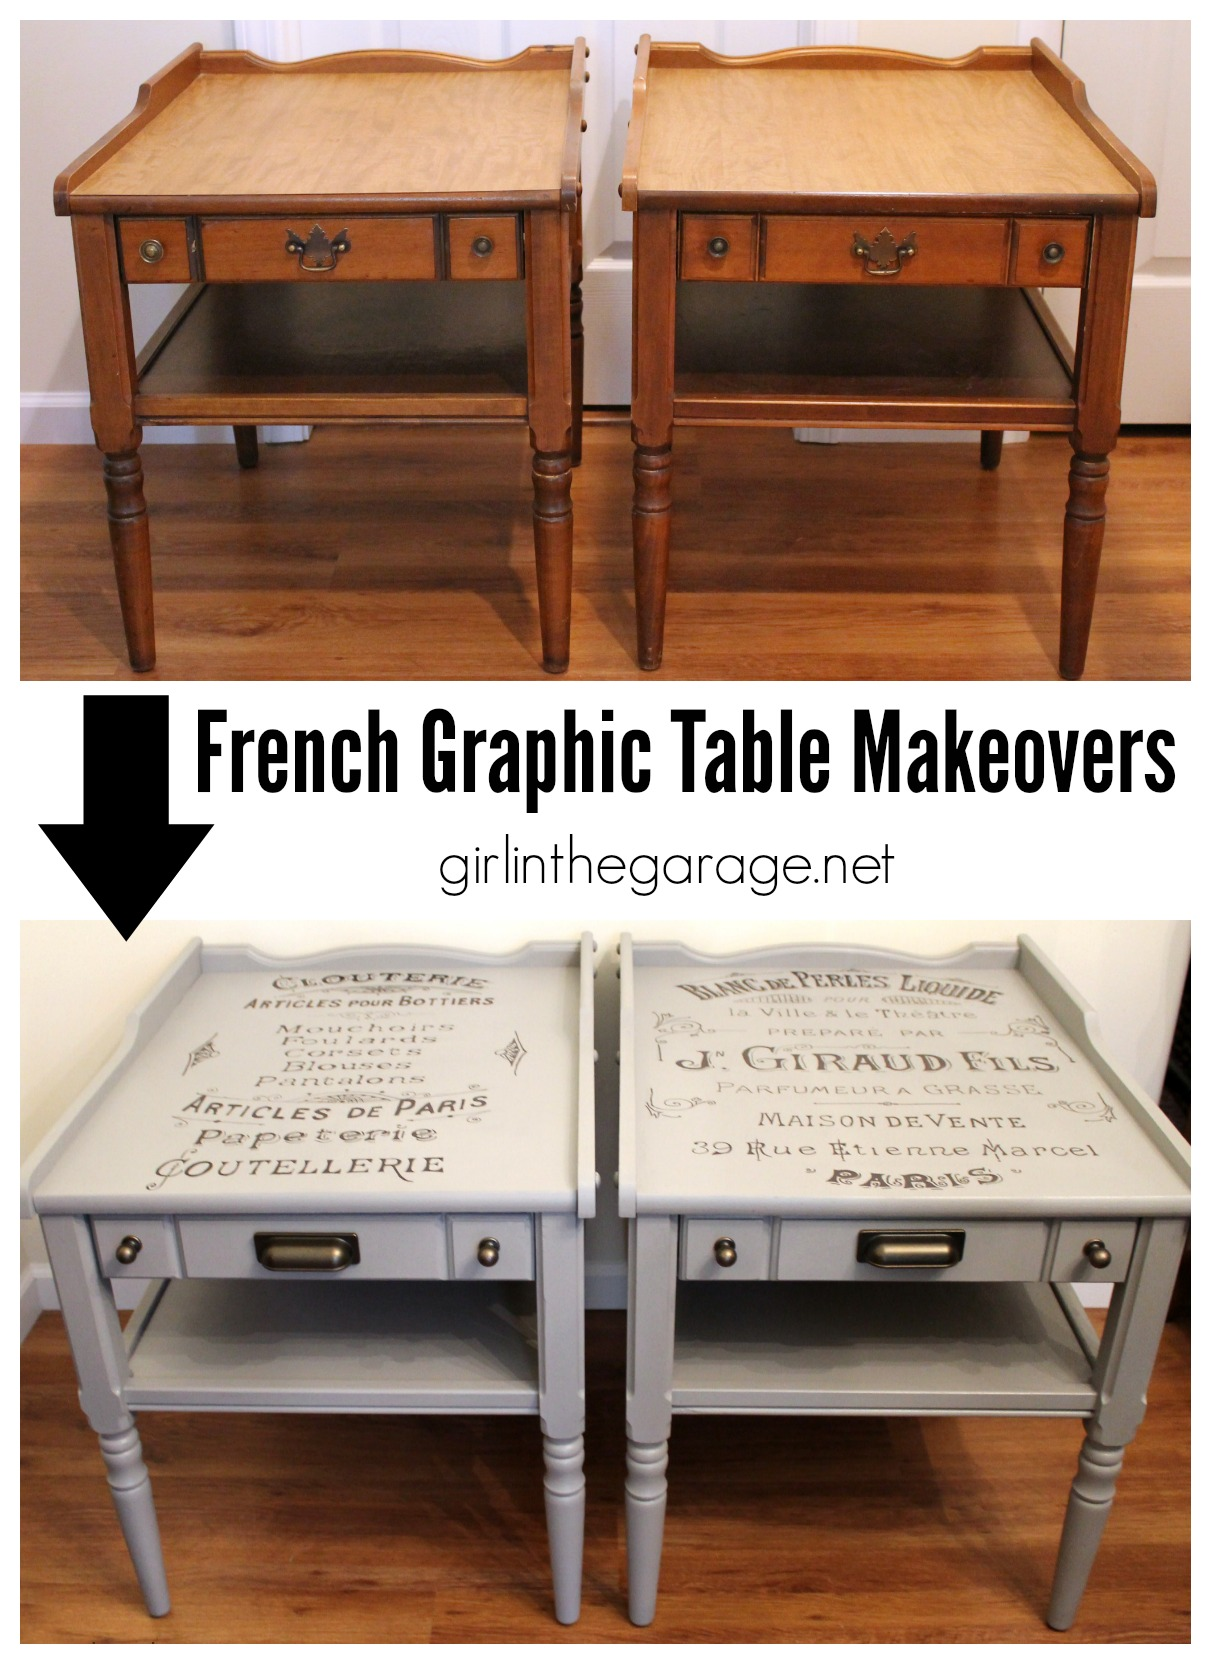 Vintage French Advertisement Tables - Girl in the Garage